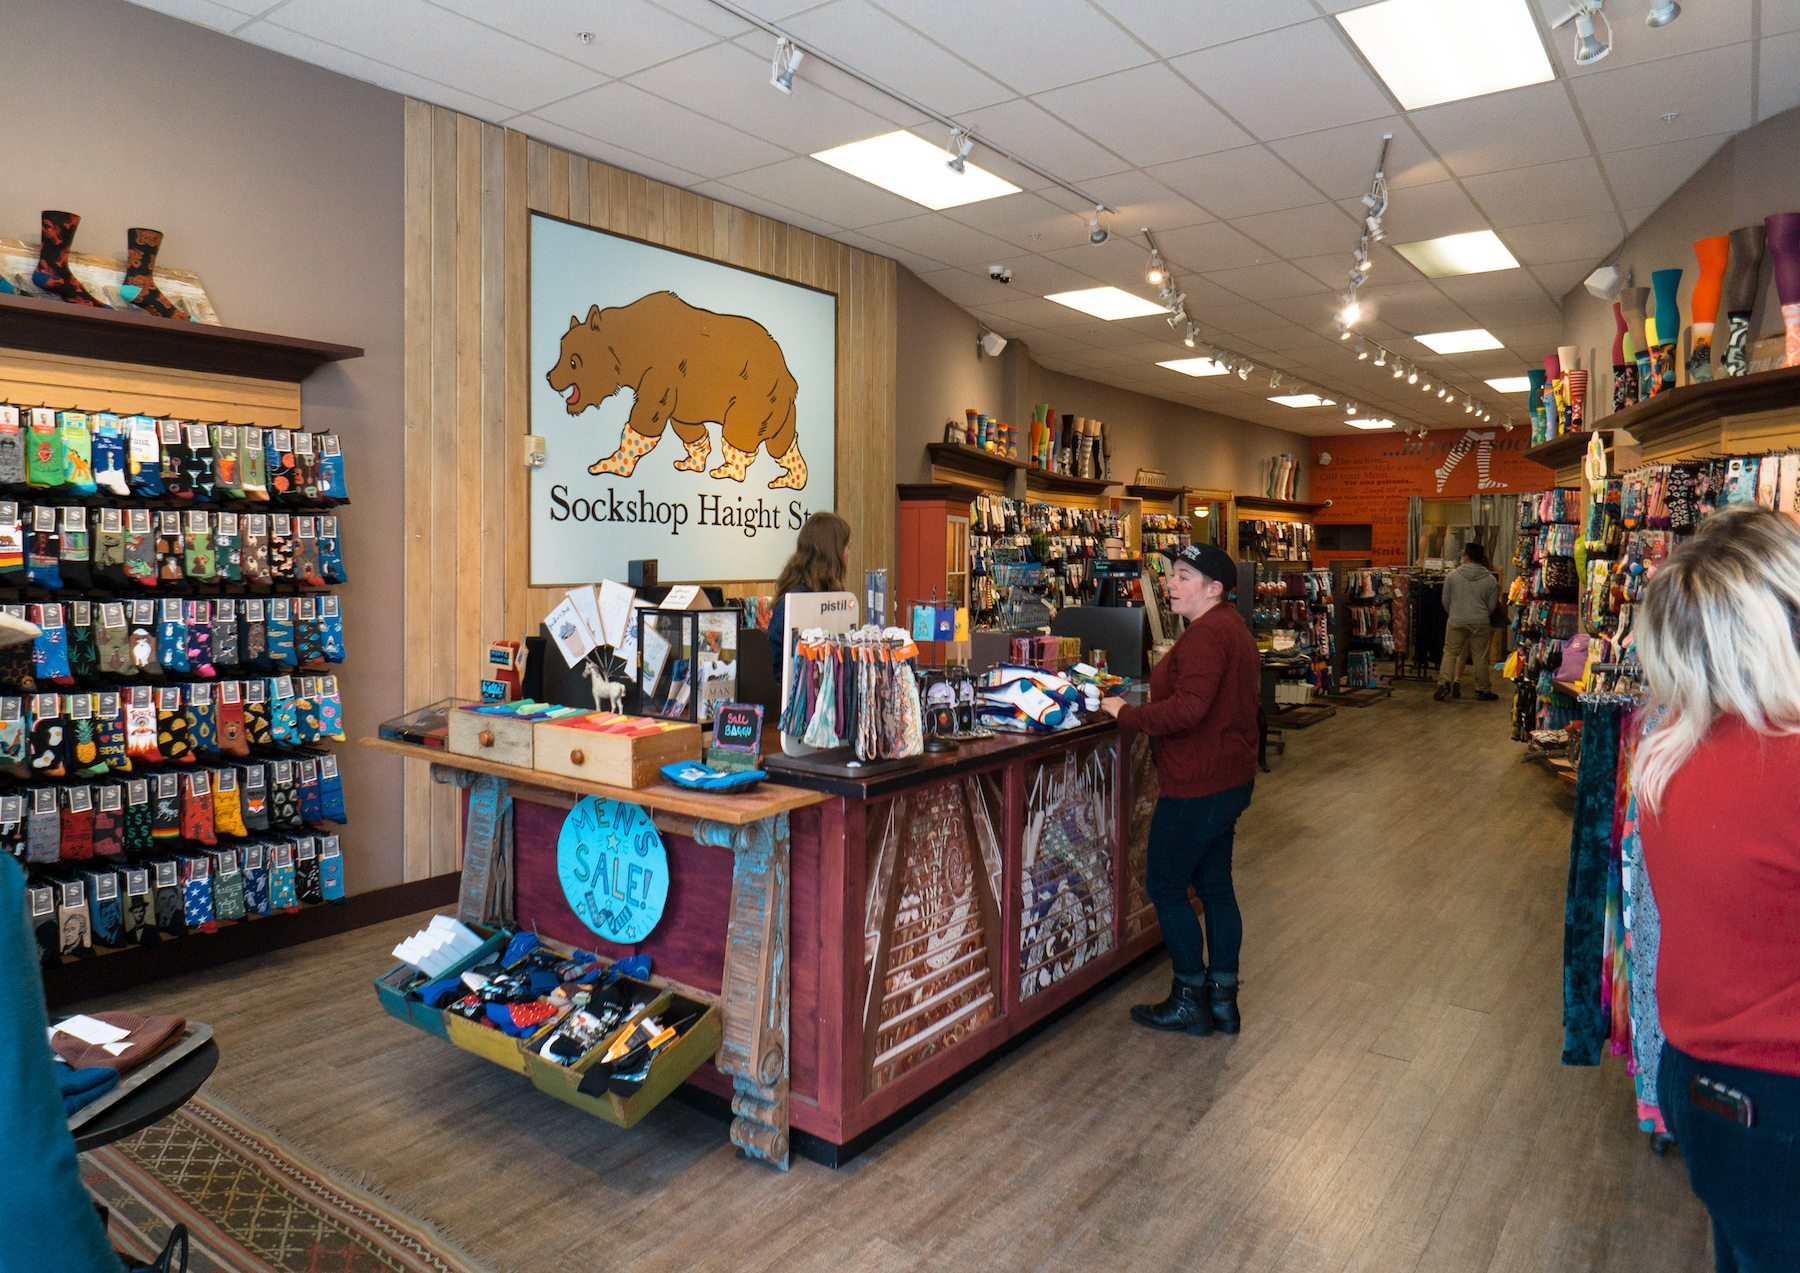 Inside Sockshop. Photo: Justin Wong, 49miles.com.